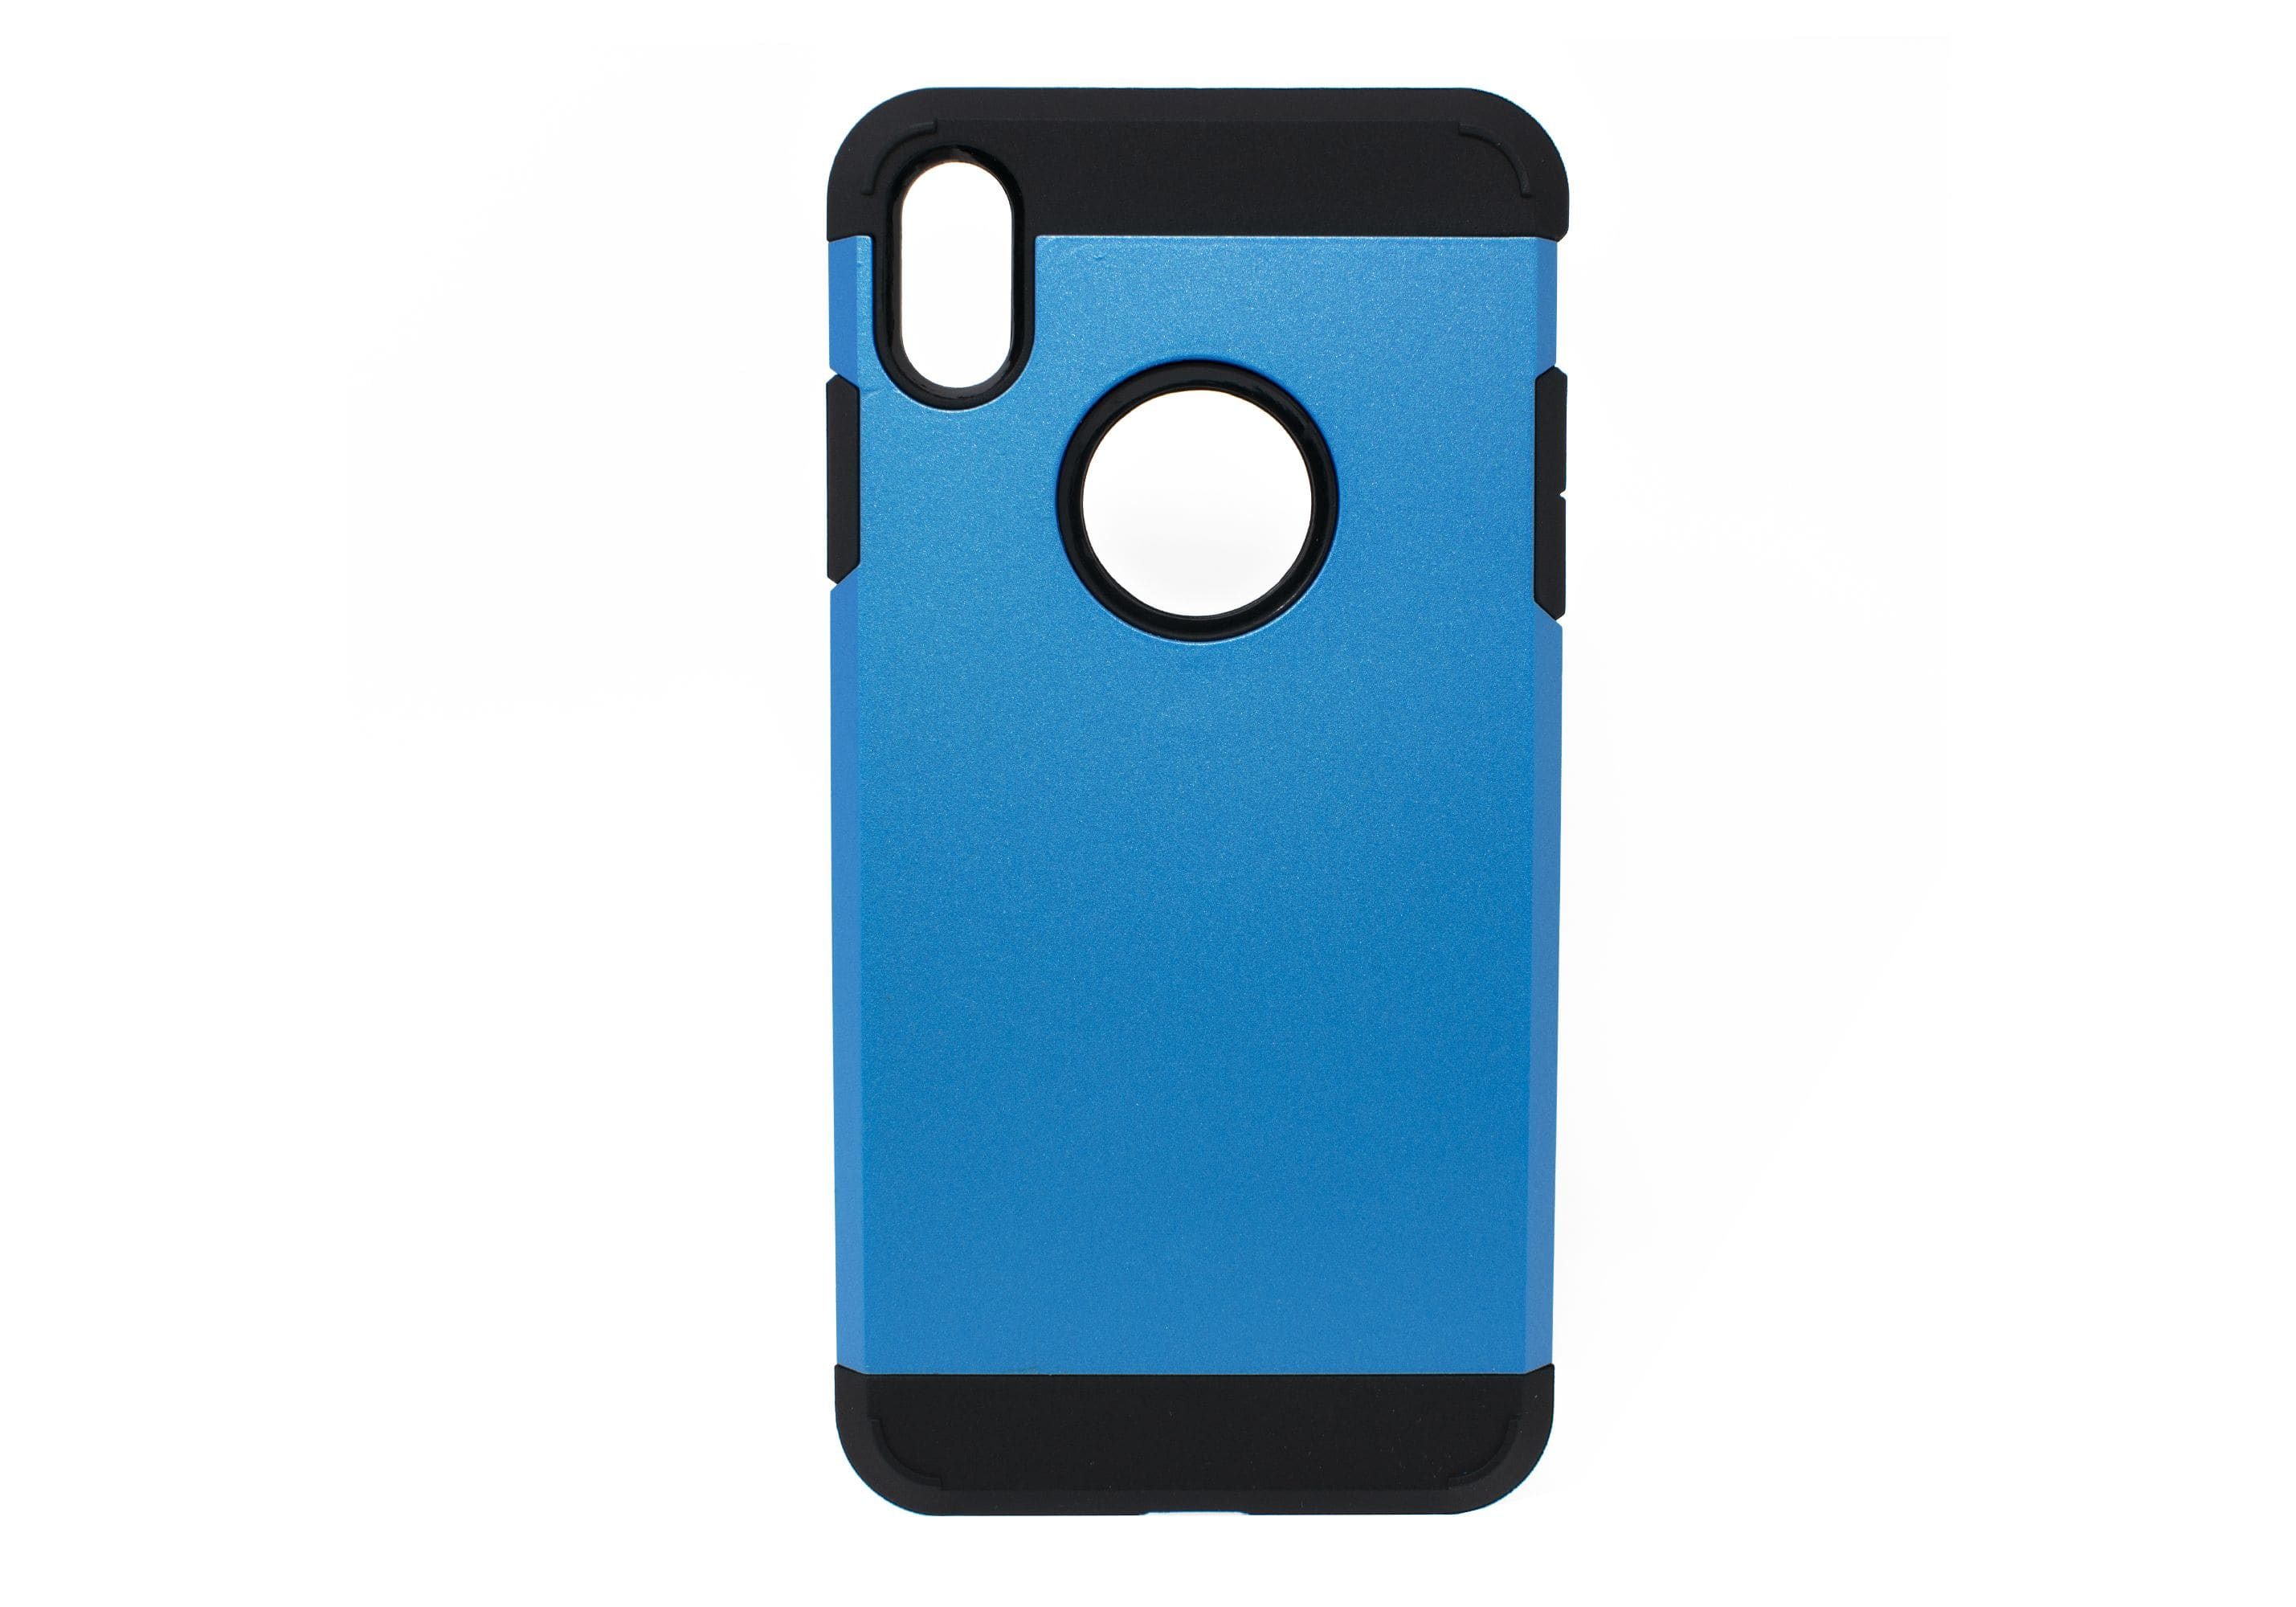 iPhone XS Max Shield Back Cover Black And Blue